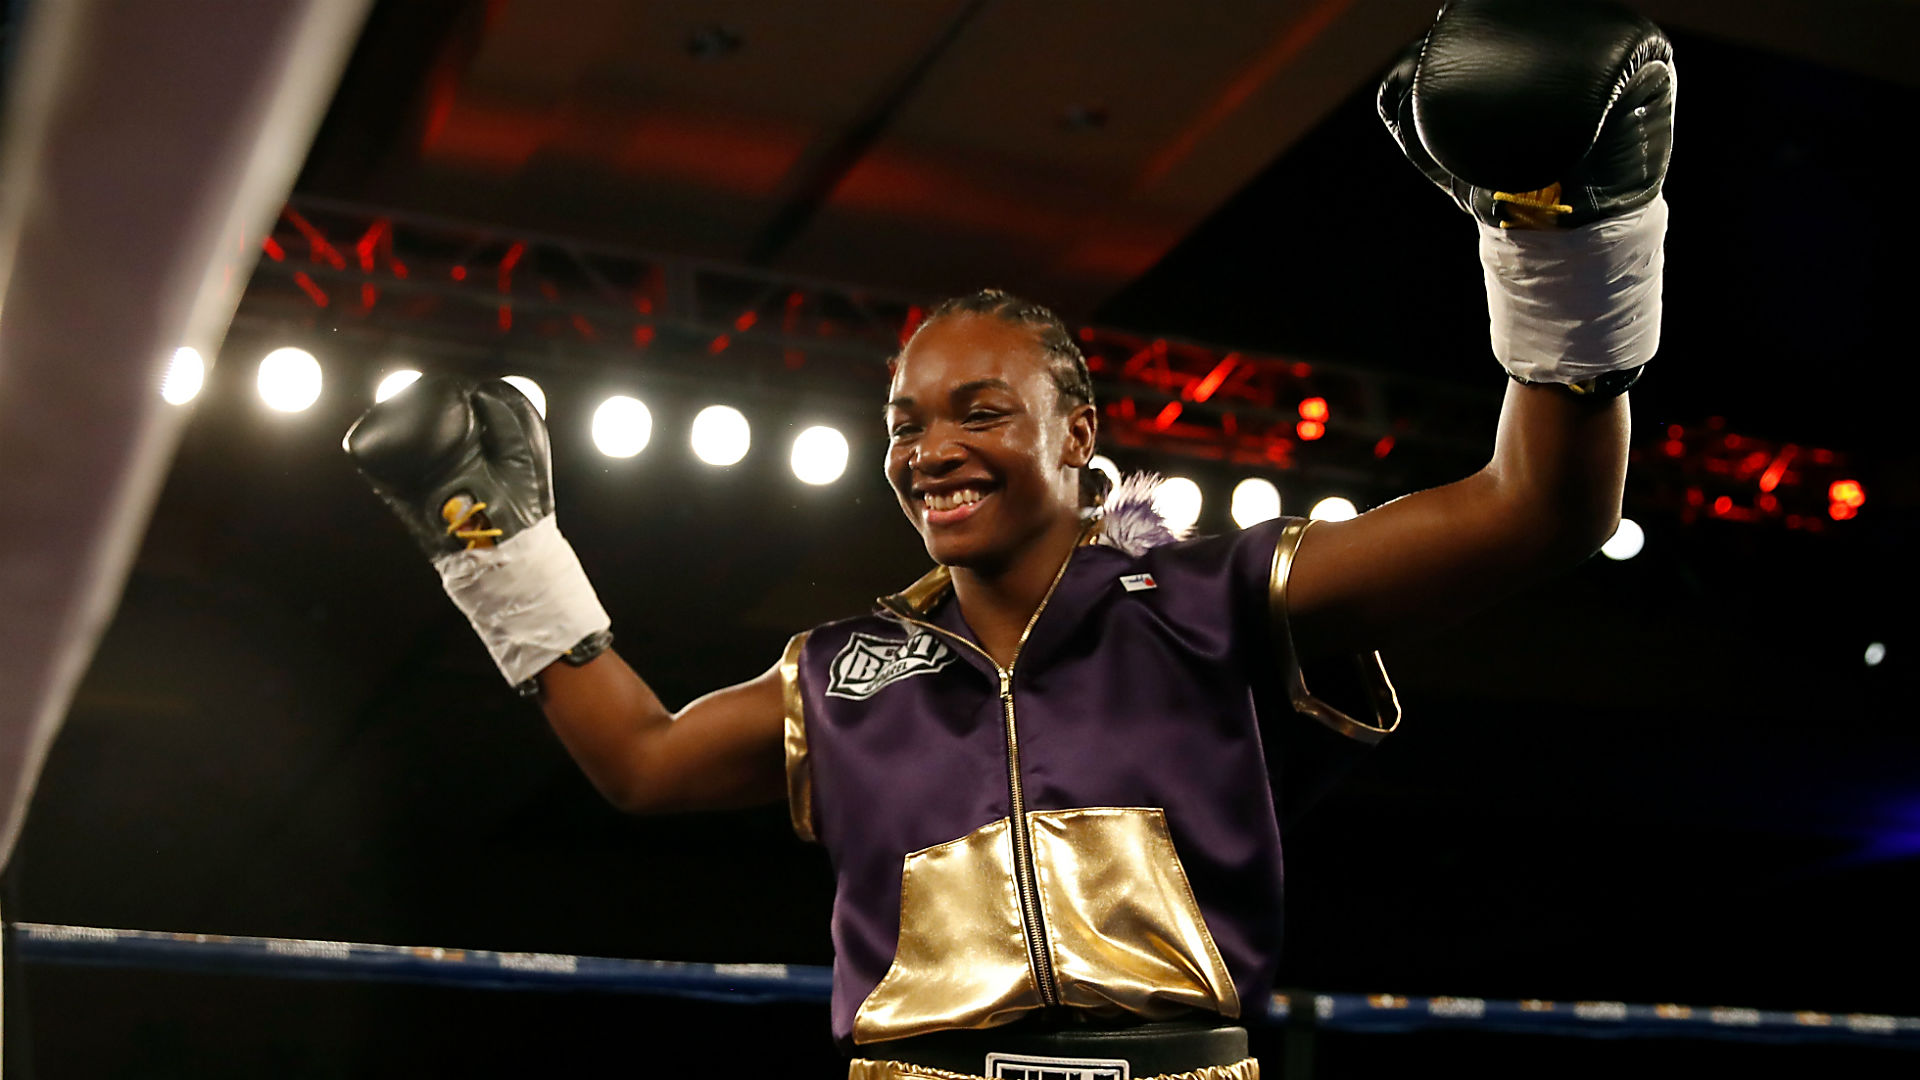 At Turning Stone, Olympic boxing champion Claressa Shields defeats Tori Nelson